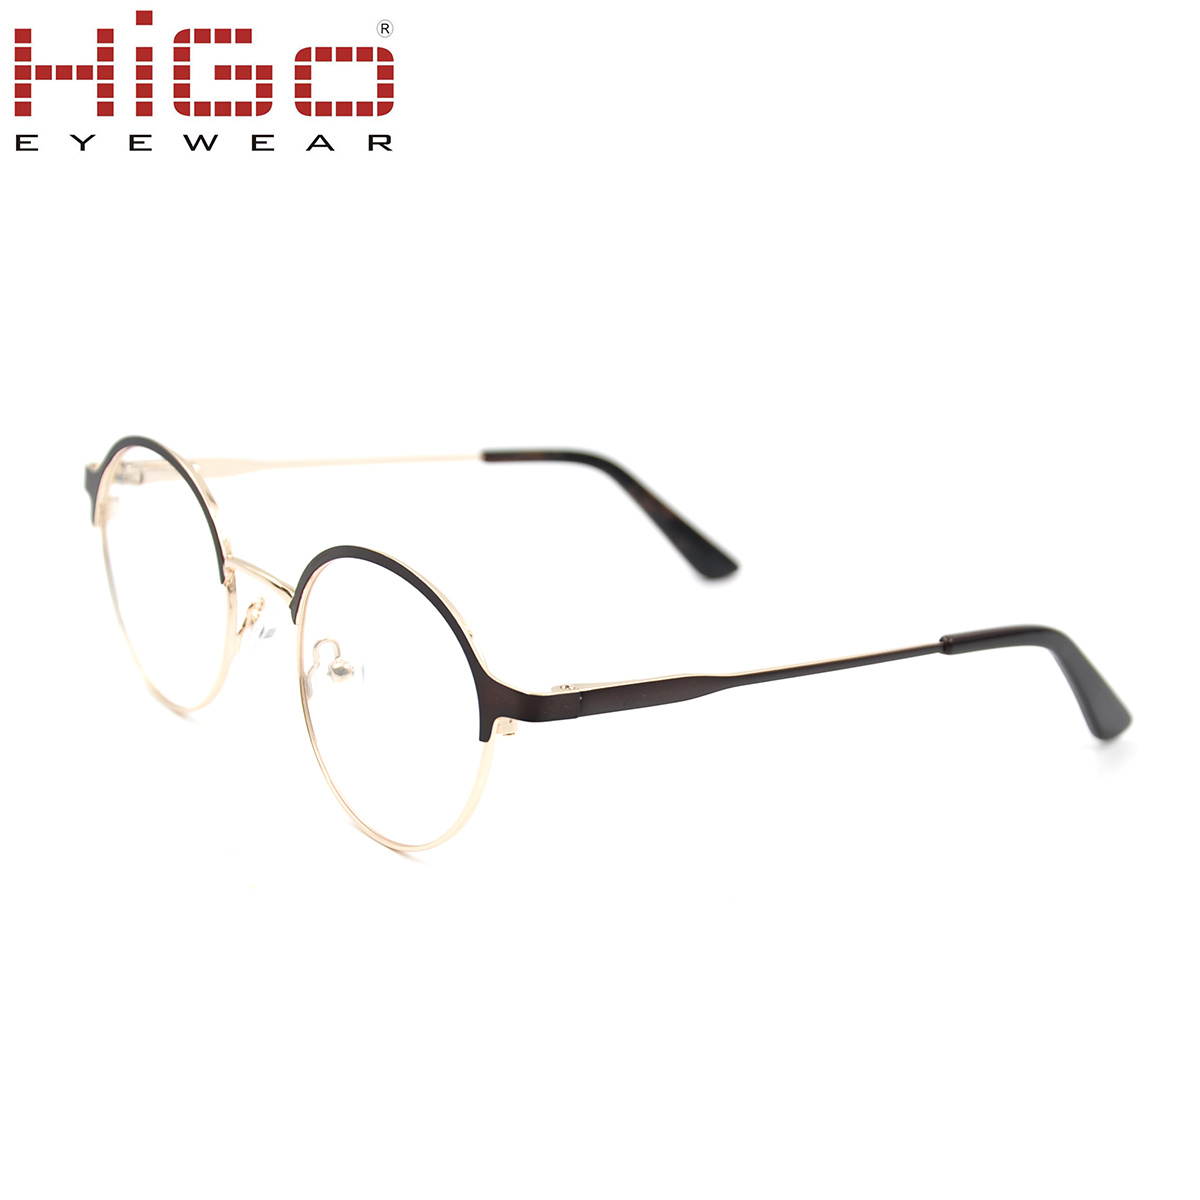 c64904e8d1 China Round Stainless Steel Glasses Newest Metal Optical Frame in ...